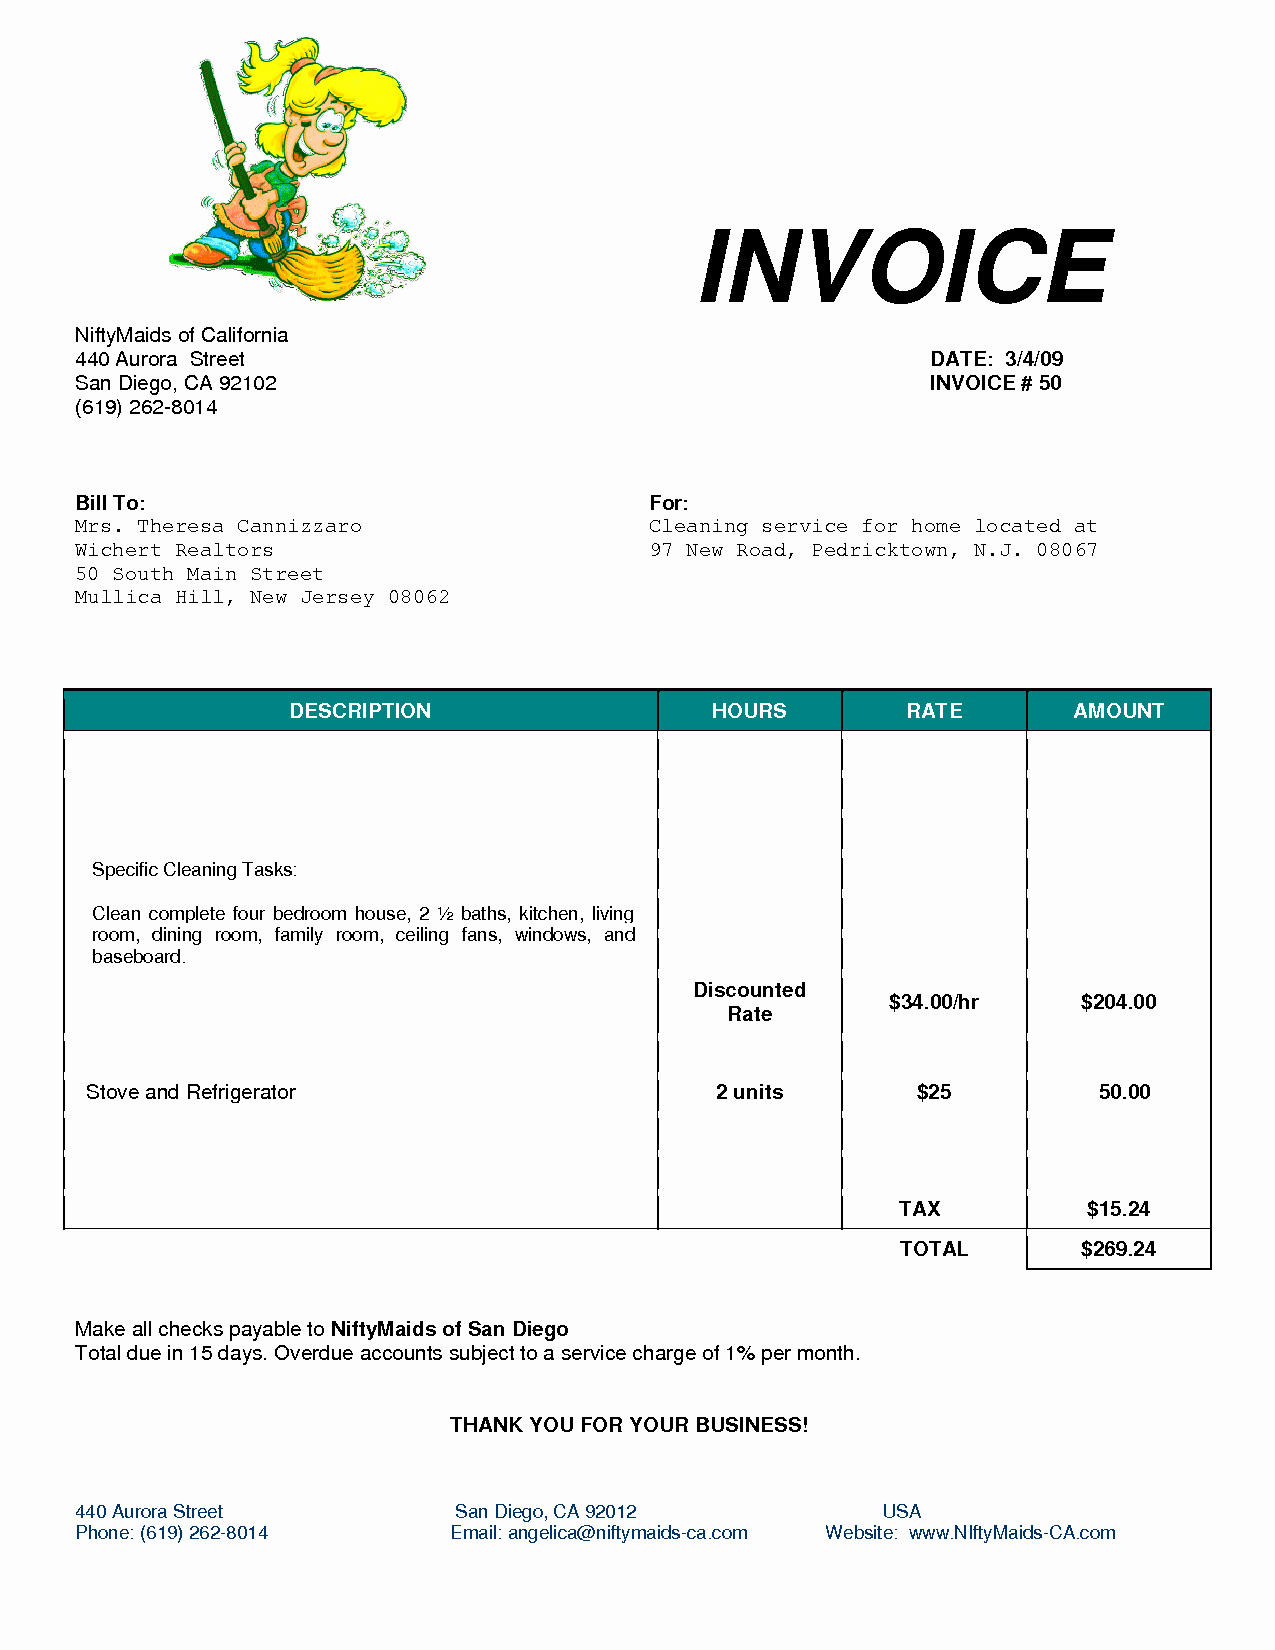 Cleaning Services Invoice Template Lovely Cleaning Invoice Template Uk